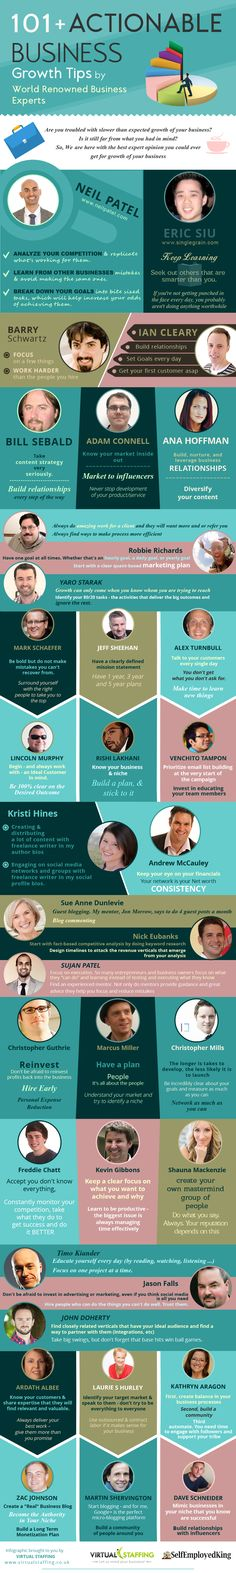 101 Actionable Business Growth Tips From Digital Marketing Experts [Infographic] — Medium Business Marketing, Content Marketing, Internet Marketing, Online Marketing, Digital Marketing, Business Infographics, Business Entrepreneur, Marketing Tactics, Guerilla Marketing